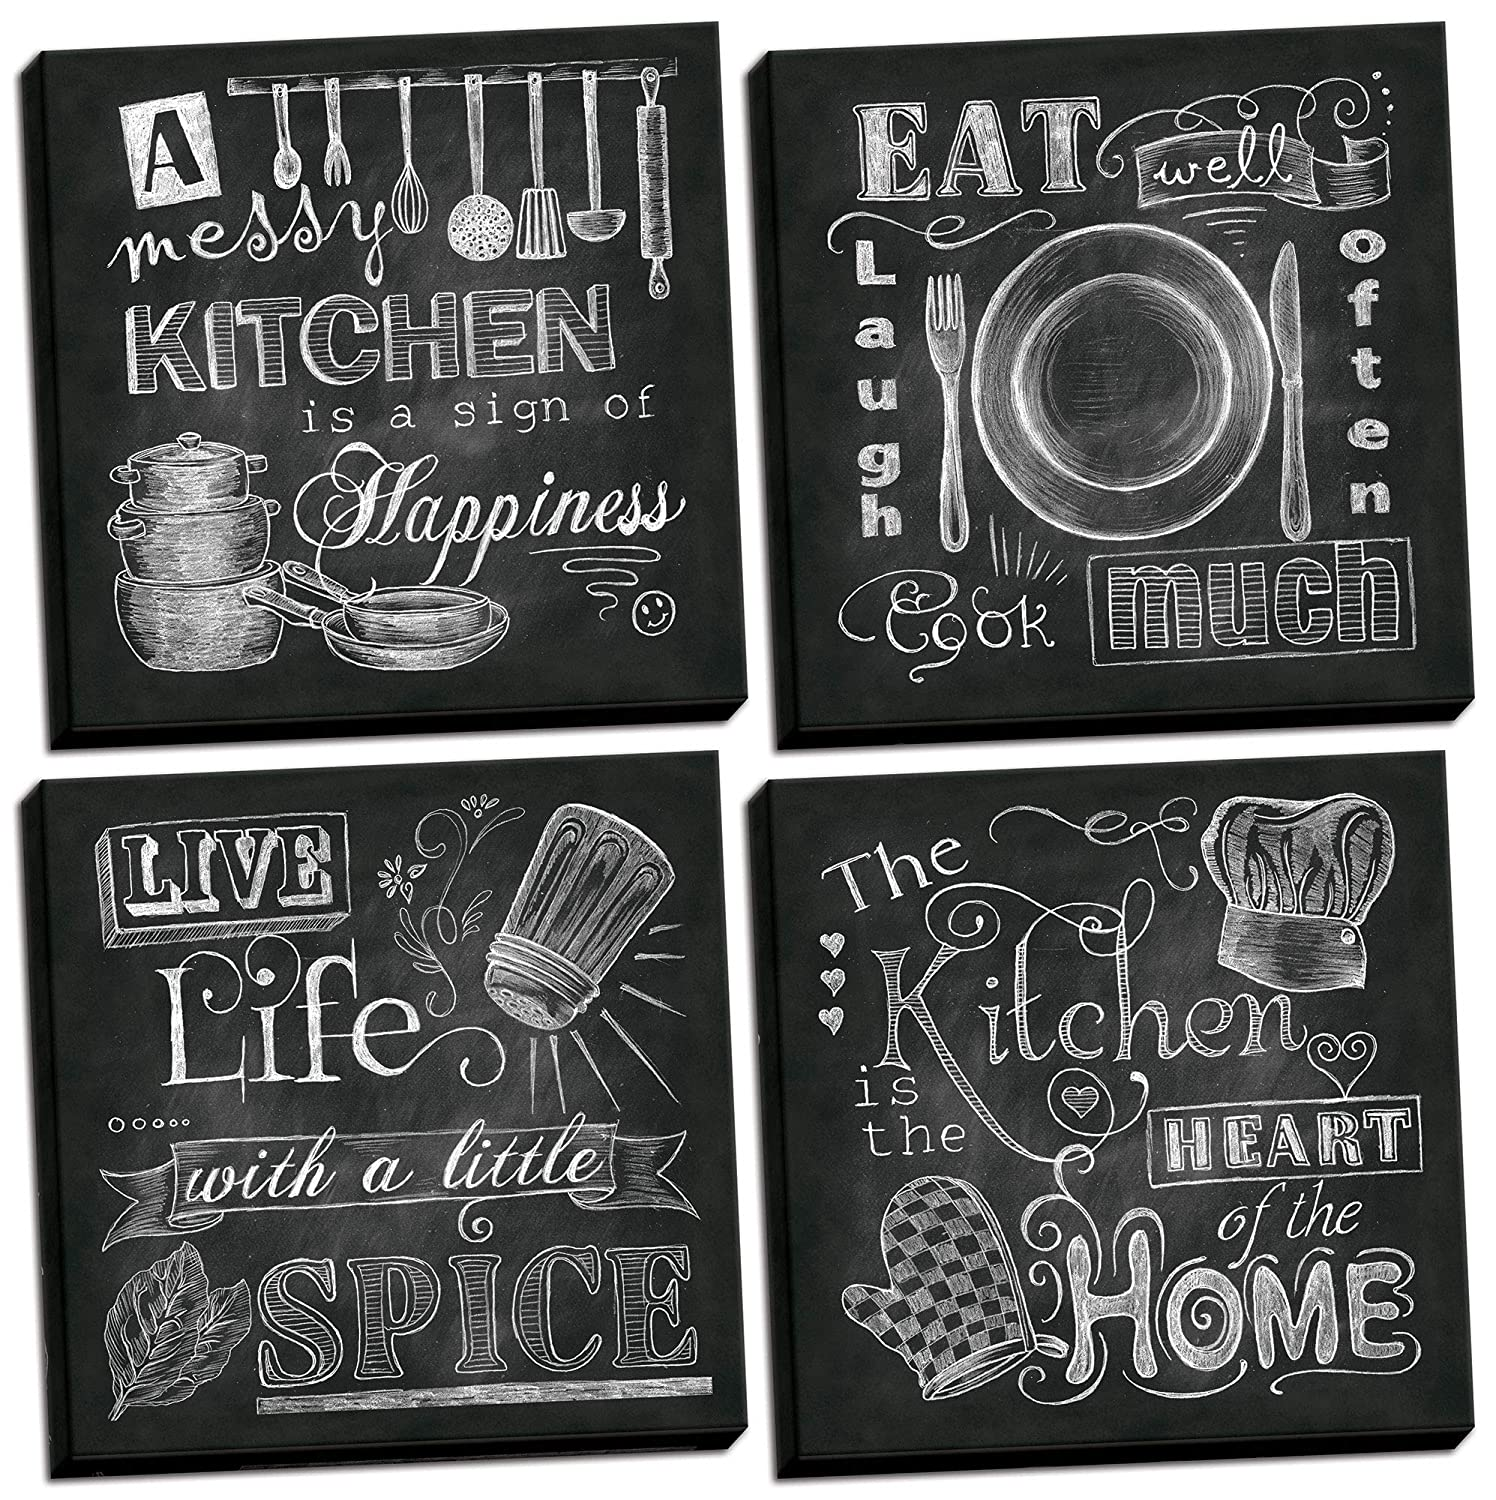 Beautiful, Fun, Chalkboard Kitchen Signs; Messy Kitchen, Heart of The Home, Spice of Life, and Cook Much; Four 12x12in Stretched Canvases; Ready to Hang!